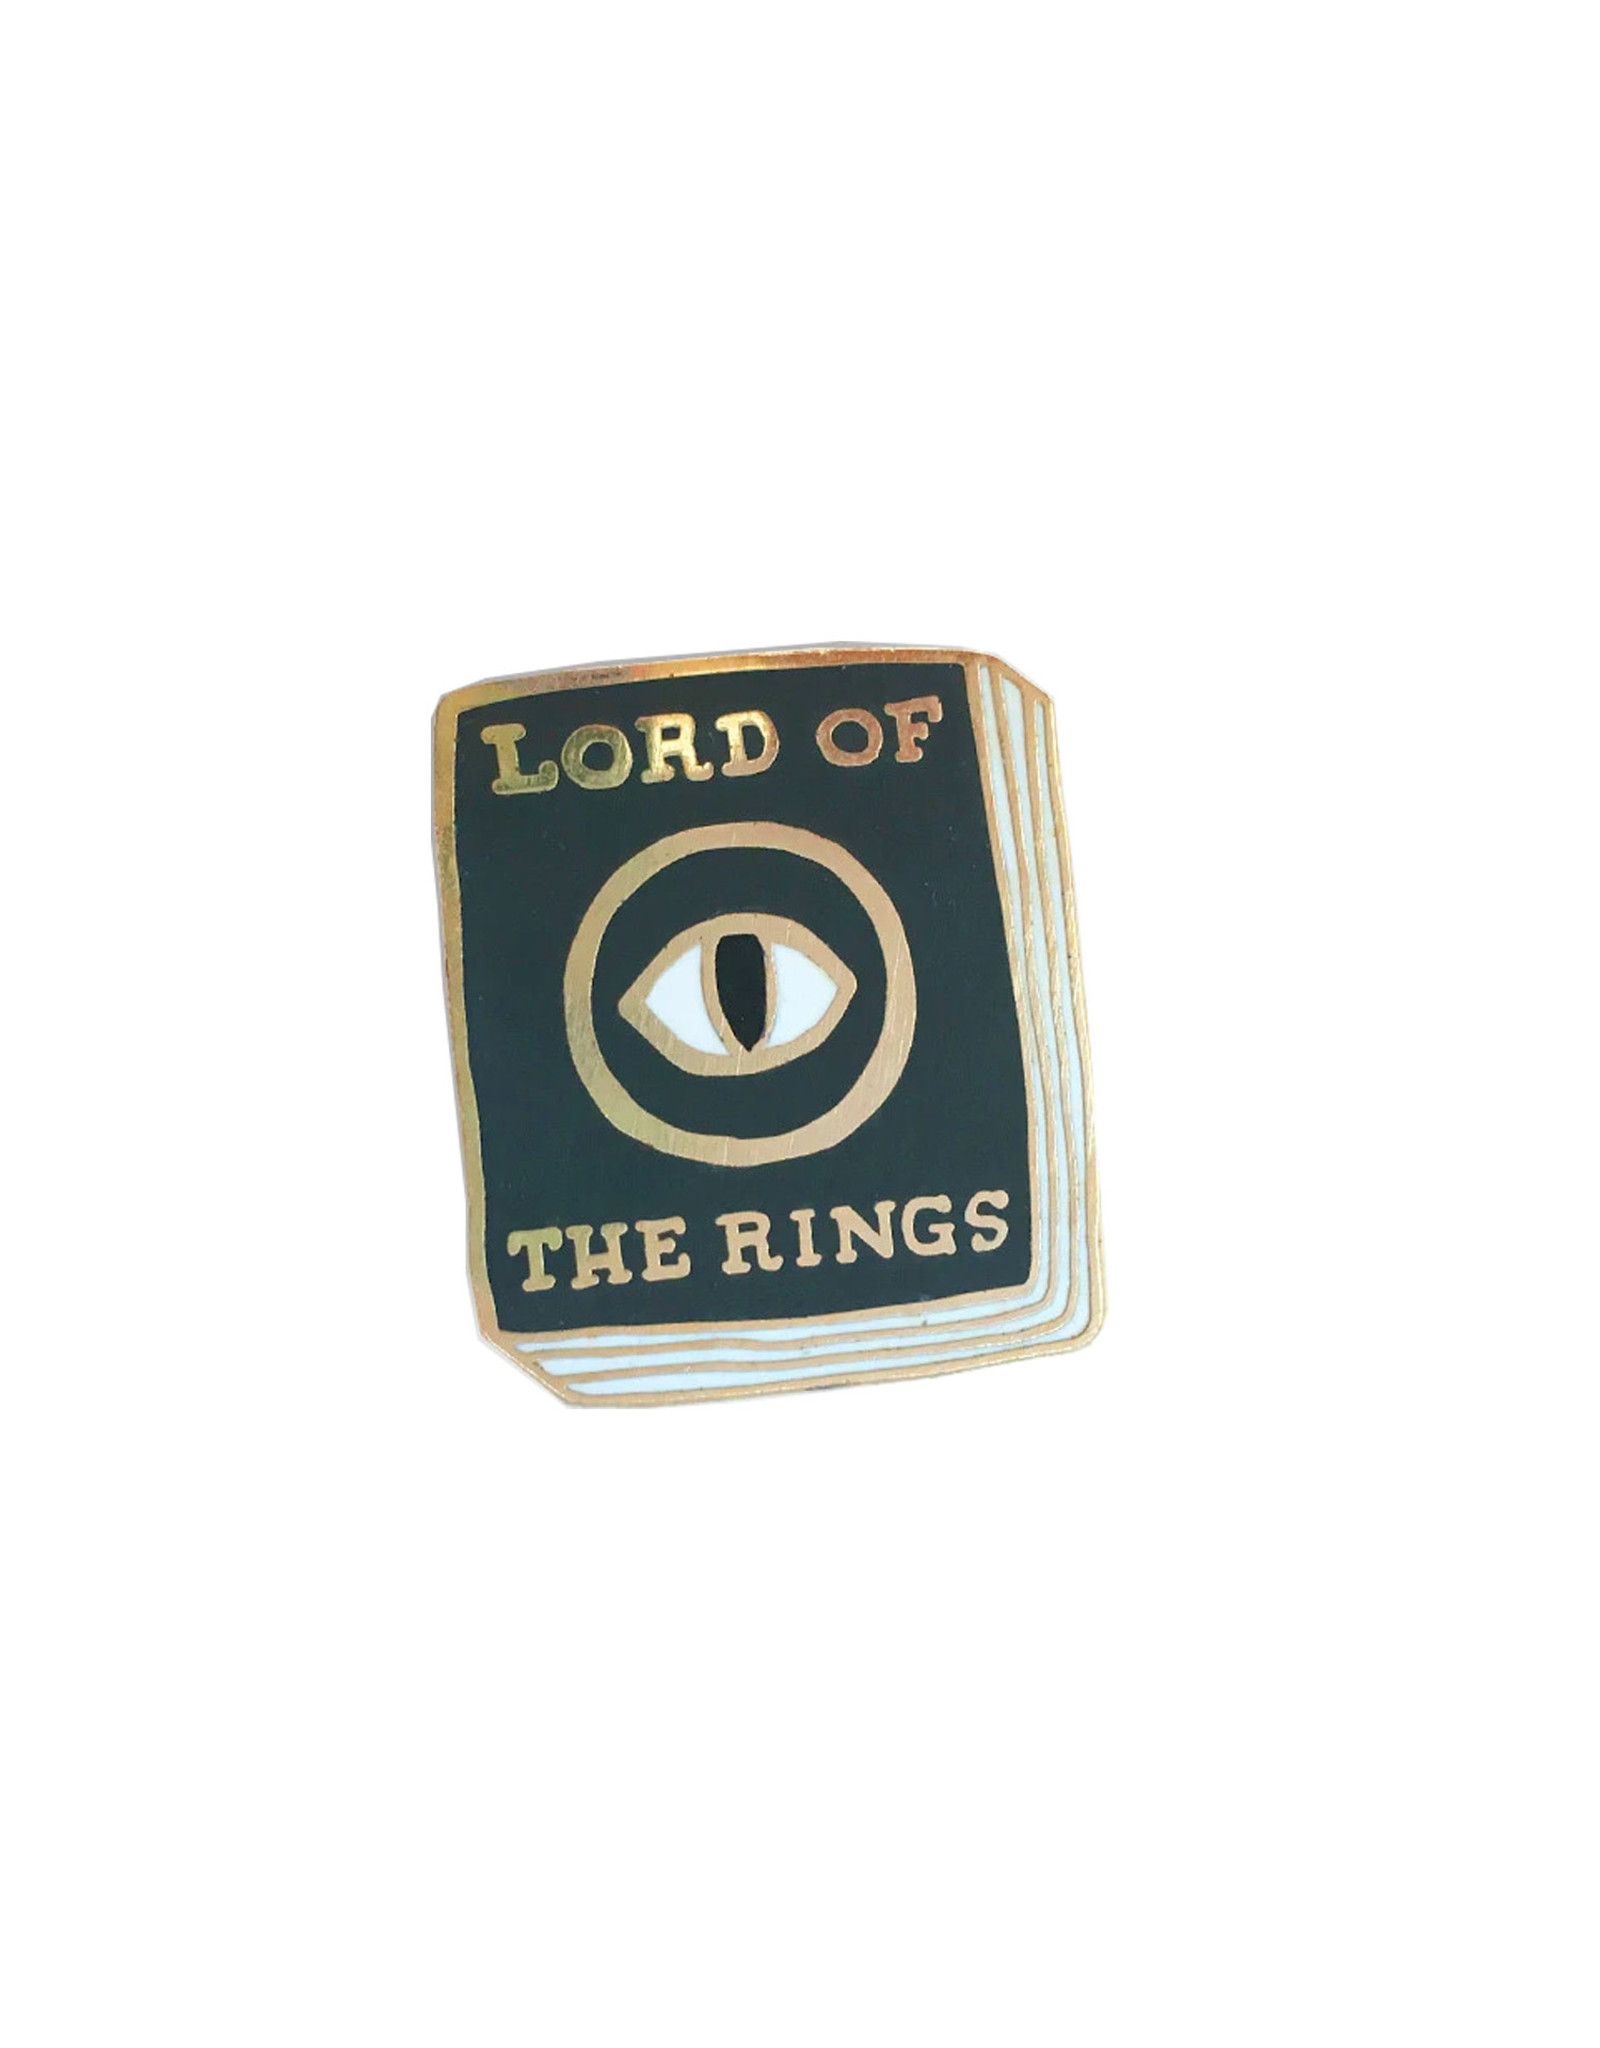 Ideal Bookshelf Book Pin: Lord of the Rings